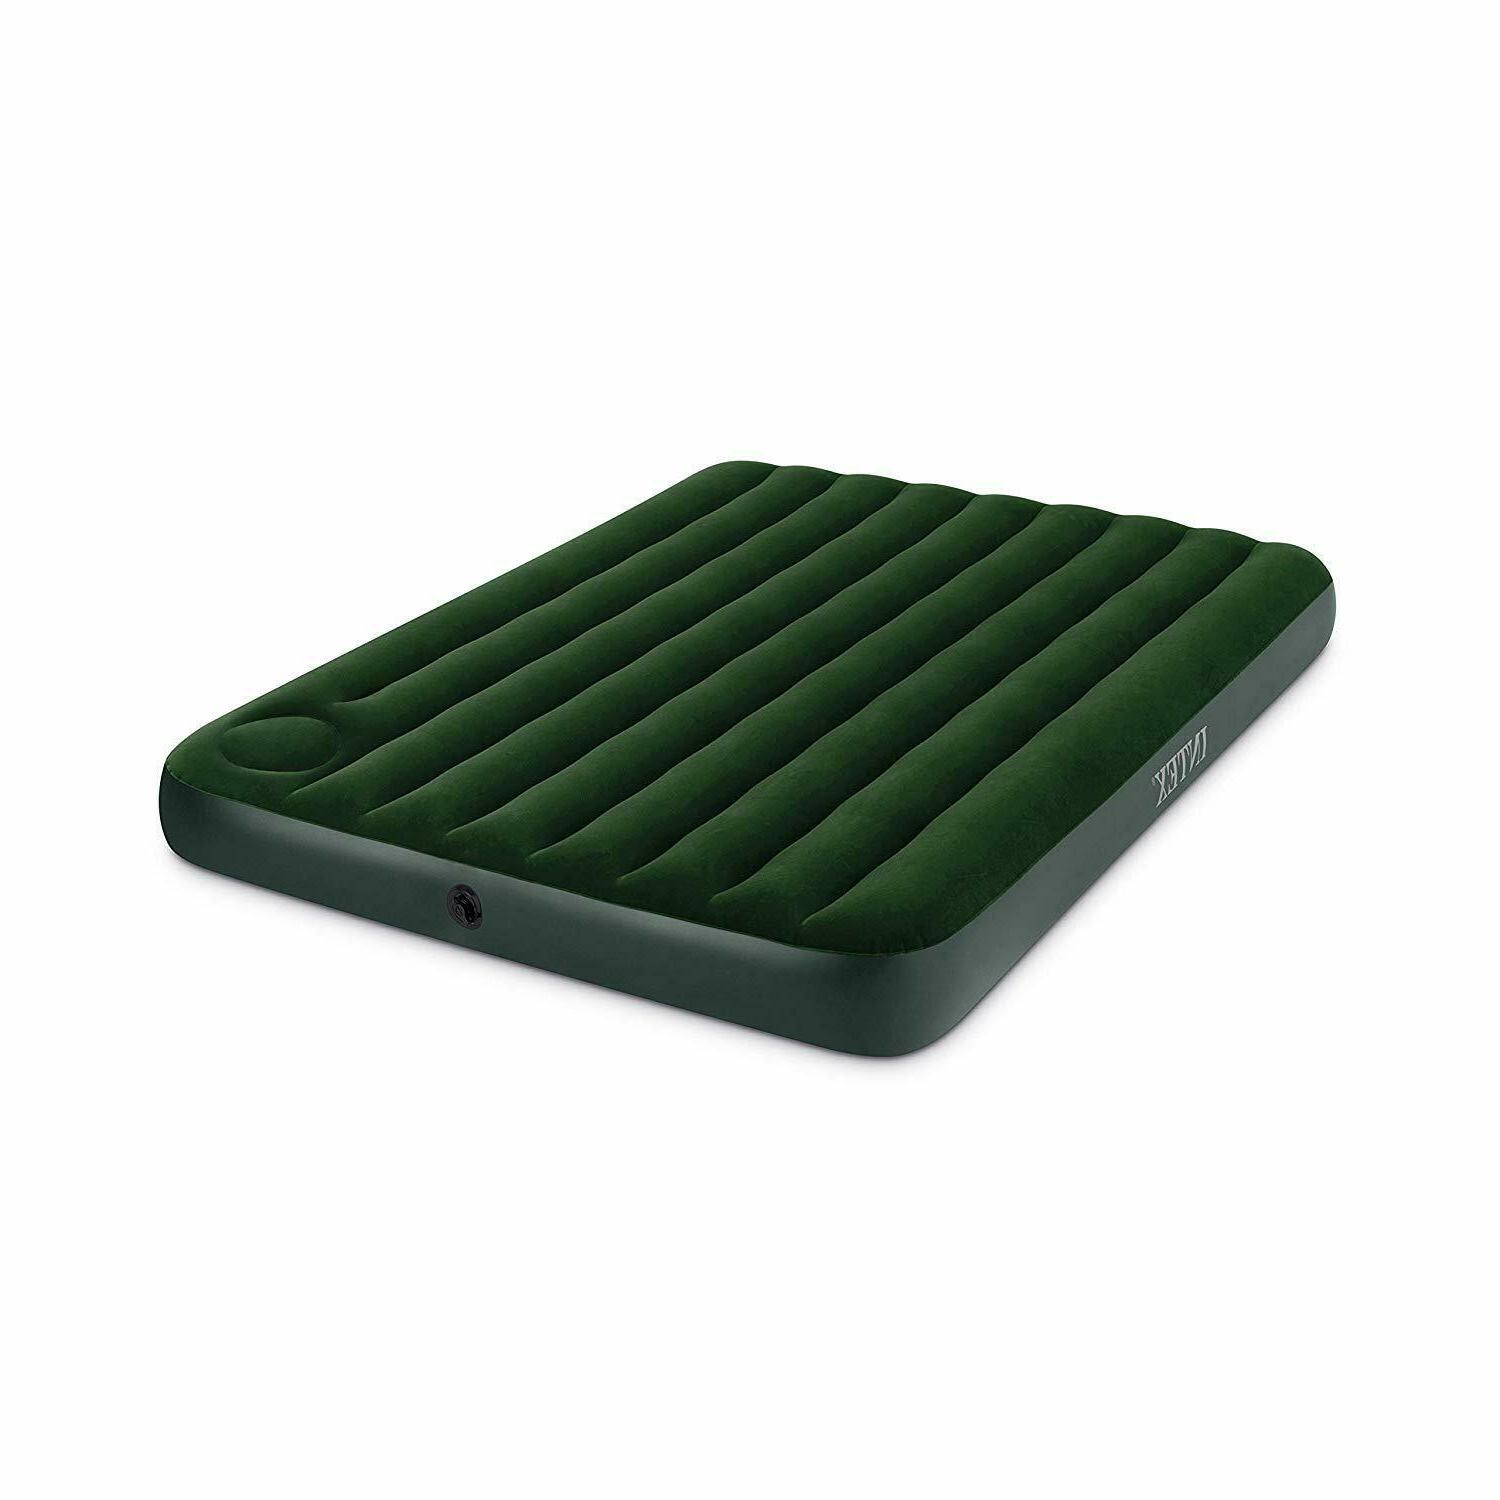 Air Bed Size Intex Inflatable Sleeping In With Pump